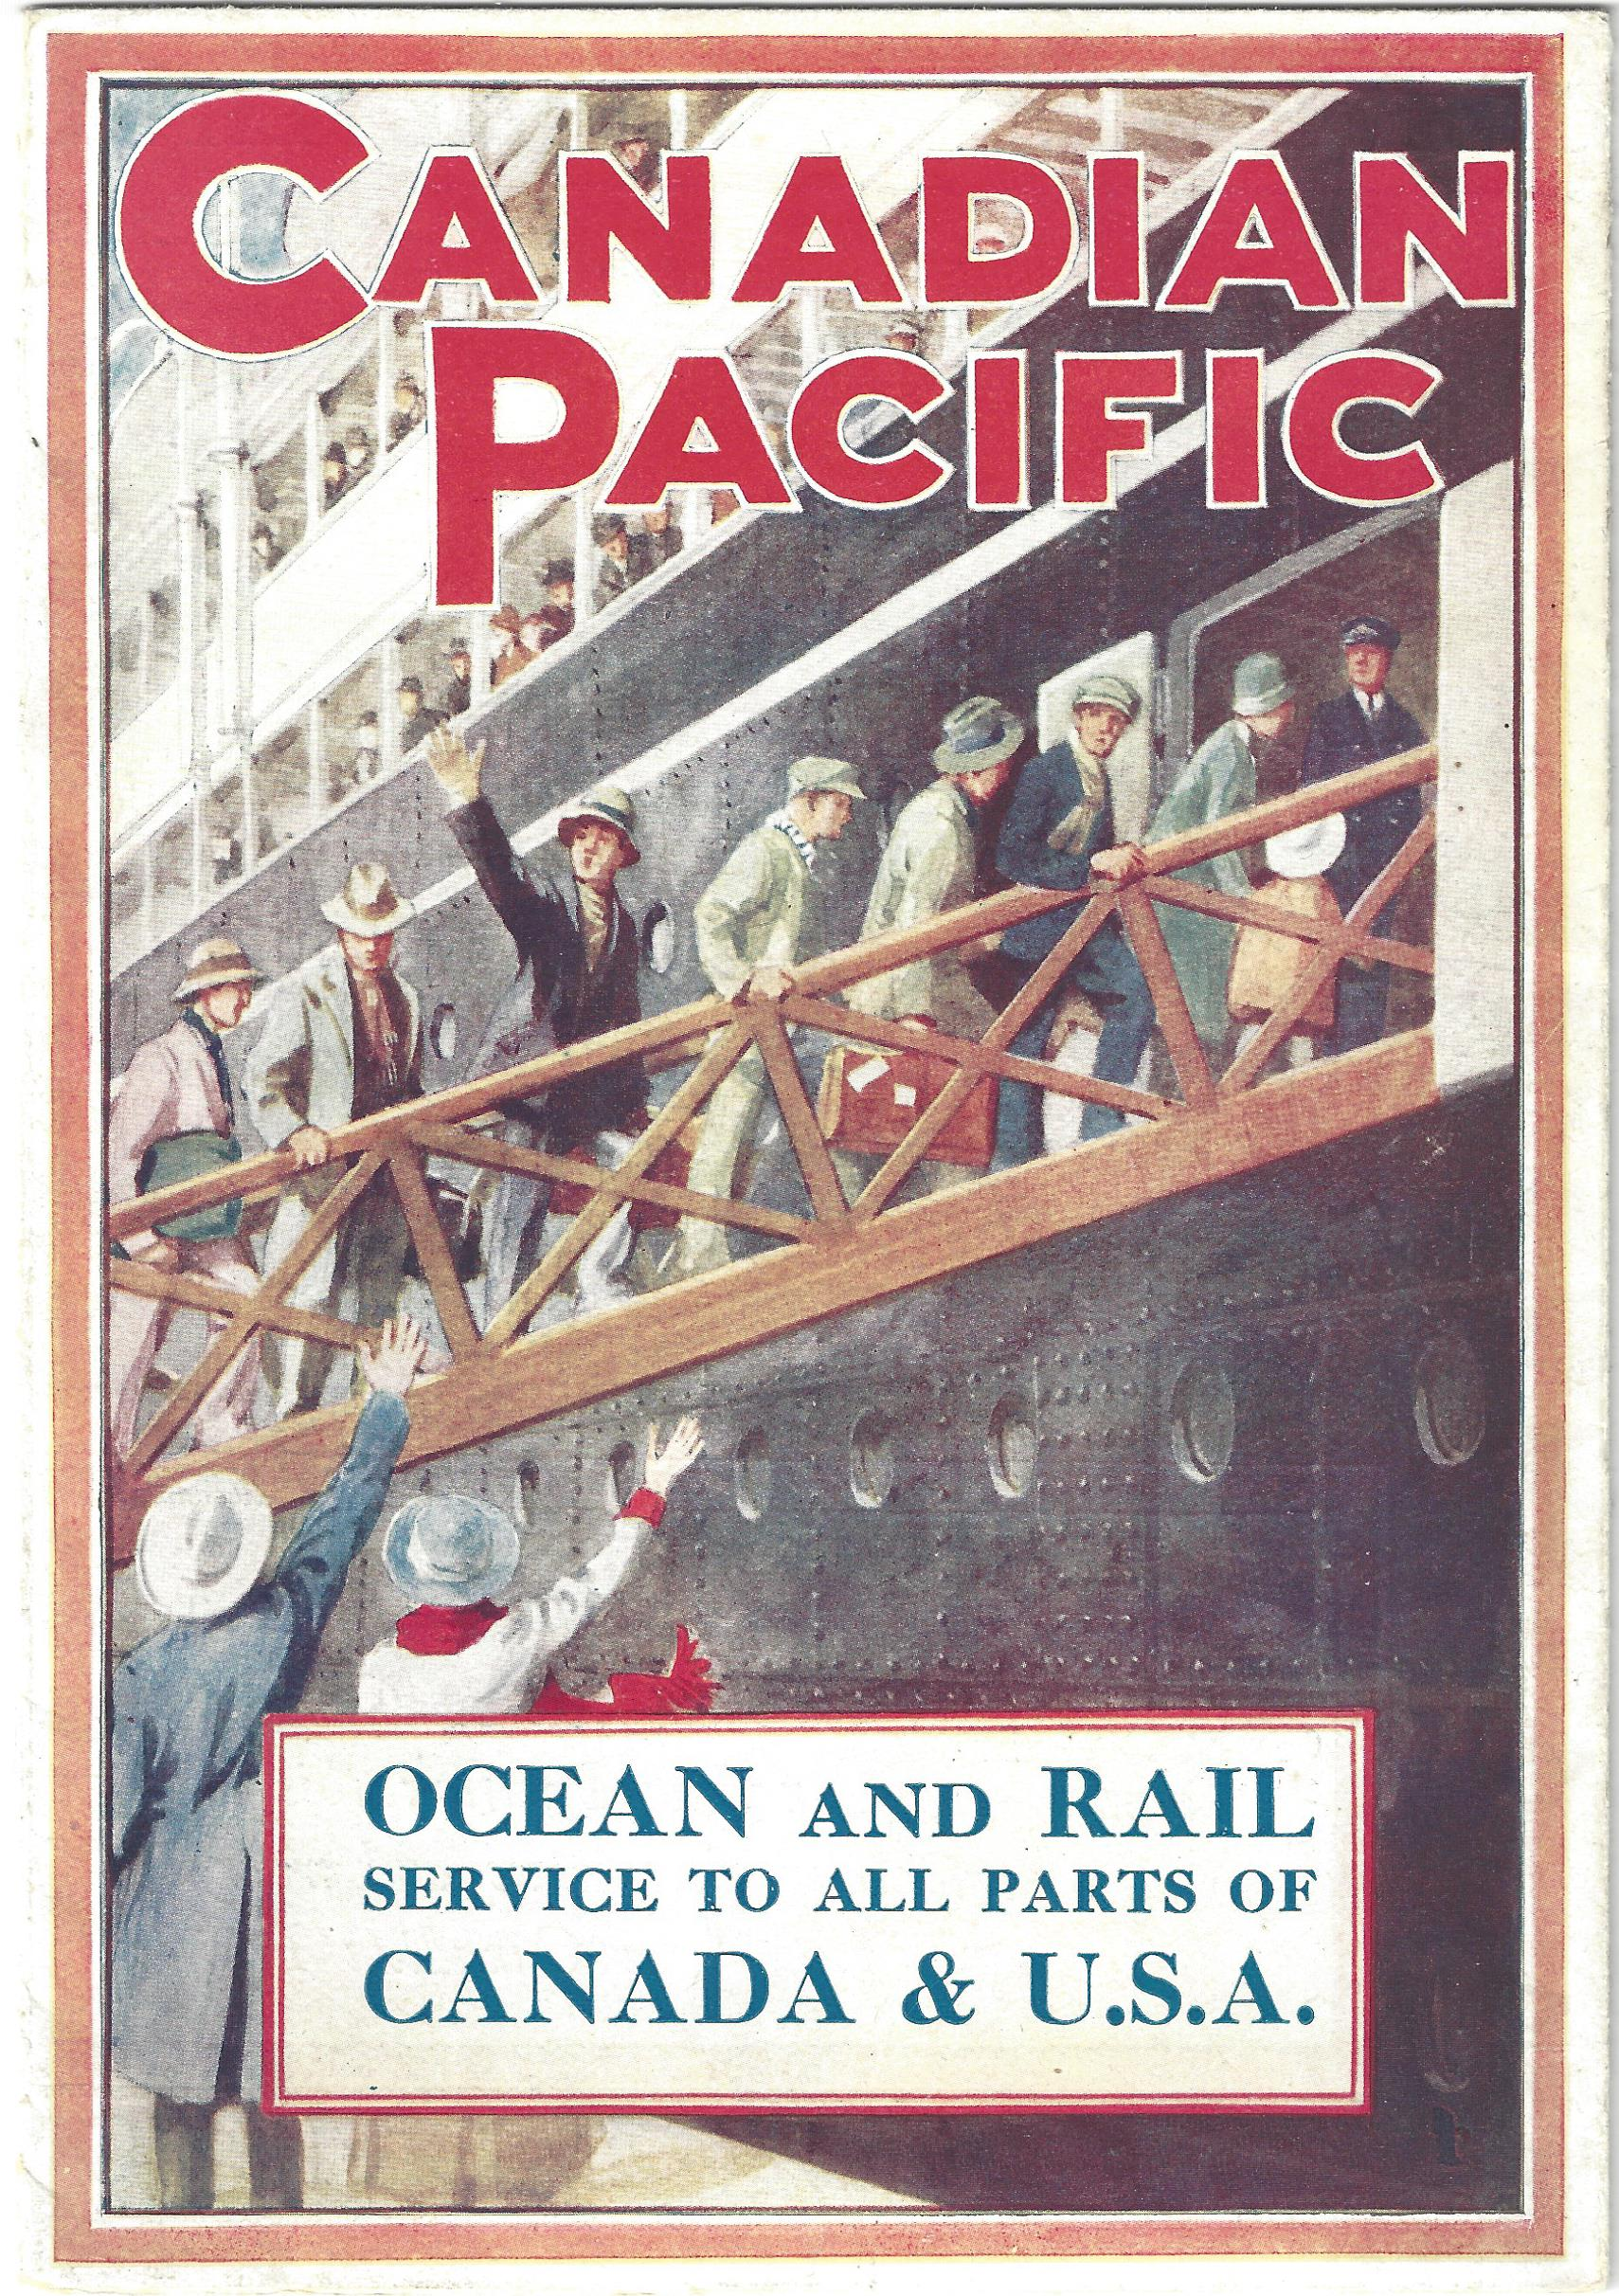 Canadian Pacific Ocean and Rail Service brochure